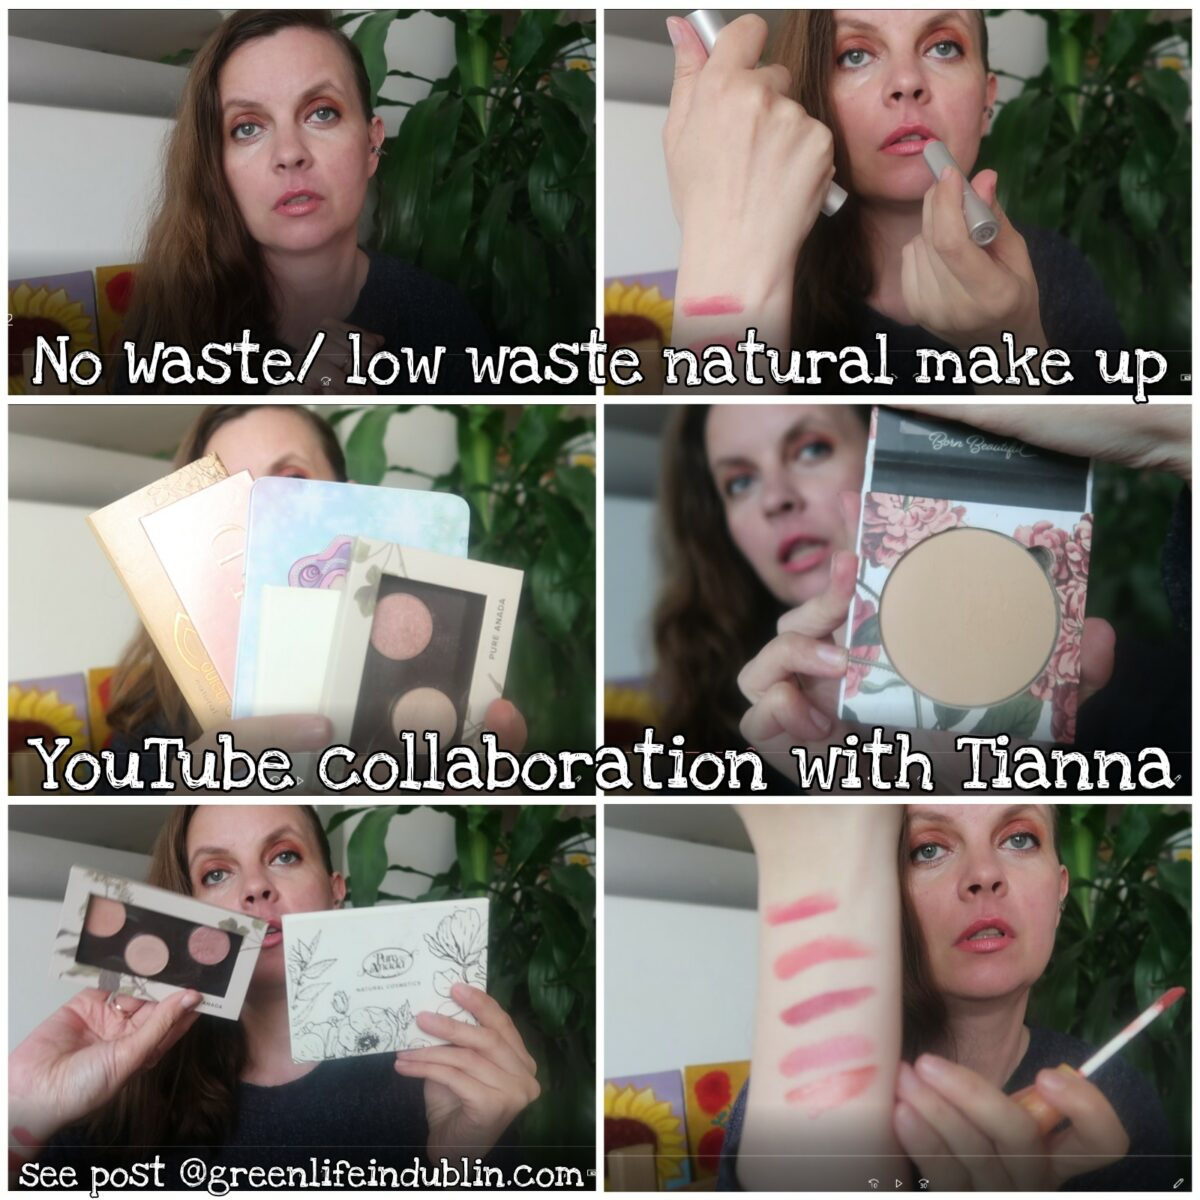 Zero Waste/ Low Waste Natural Make Up Faves – Youtube Collab with Tianna